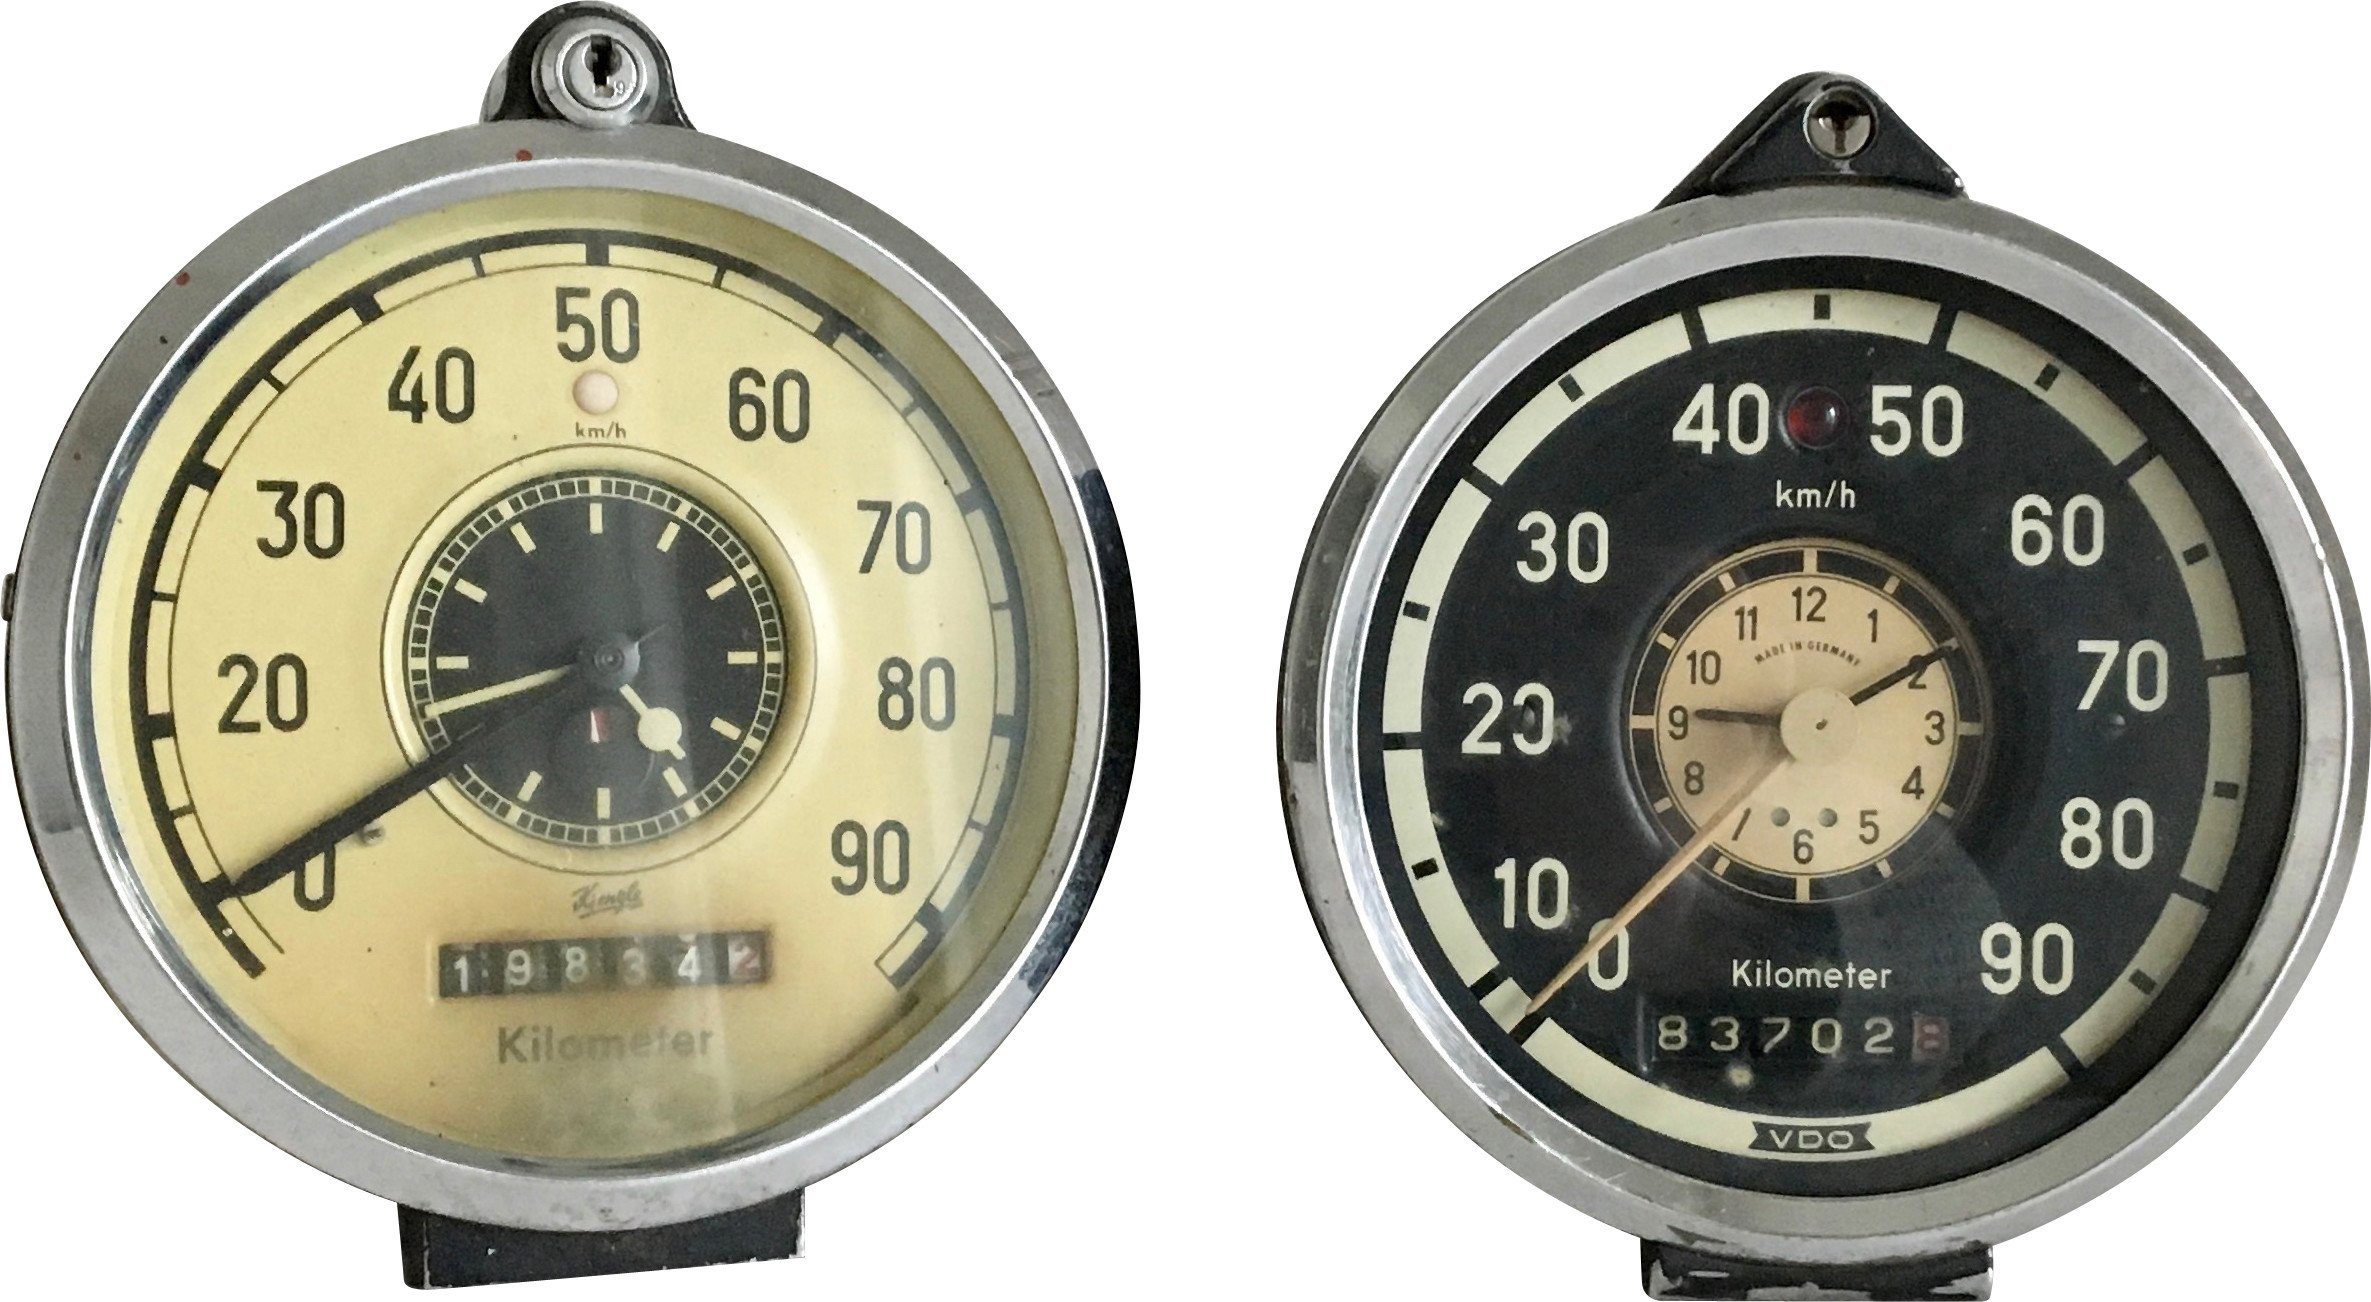 Pair of Speed Counters, Austria, 1958